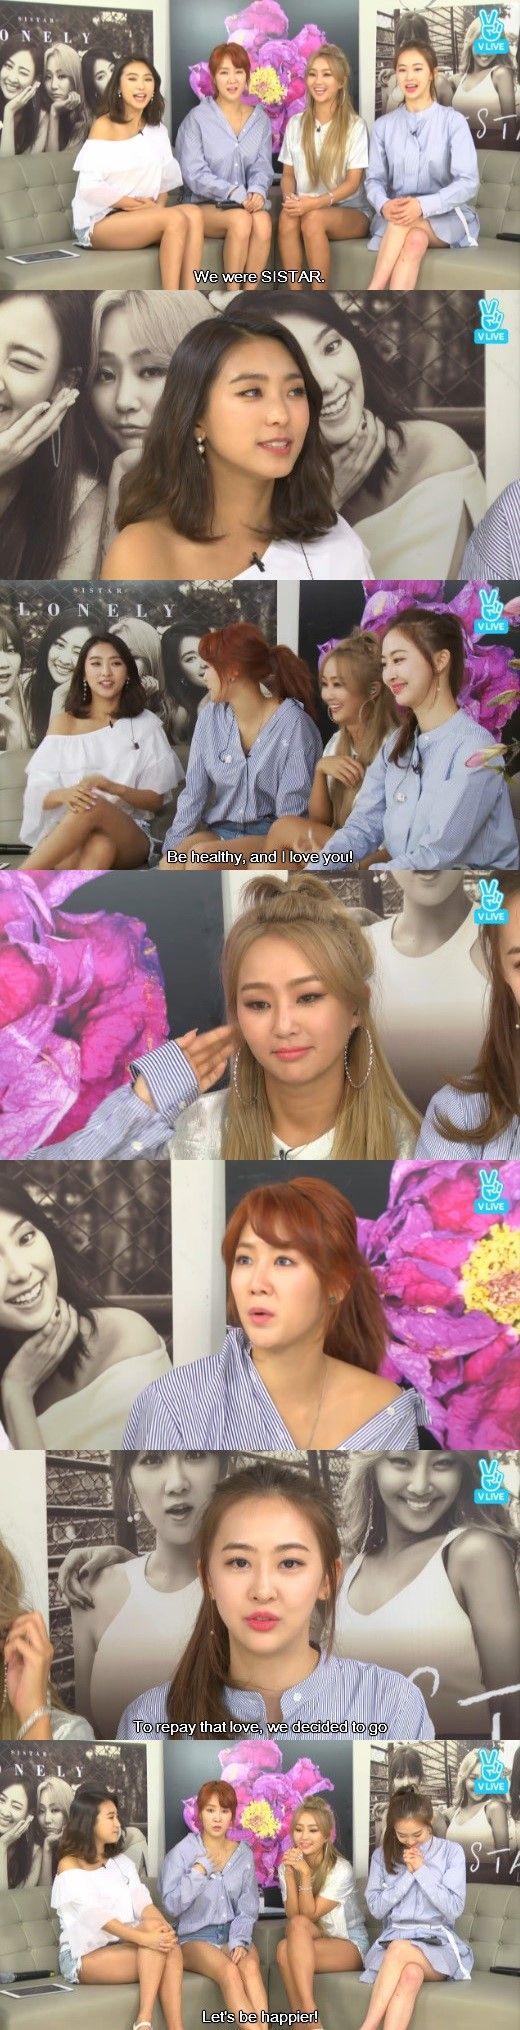 SISTAR, SISTAR V App, SISTAR Lonely, SISTAR Disbandment